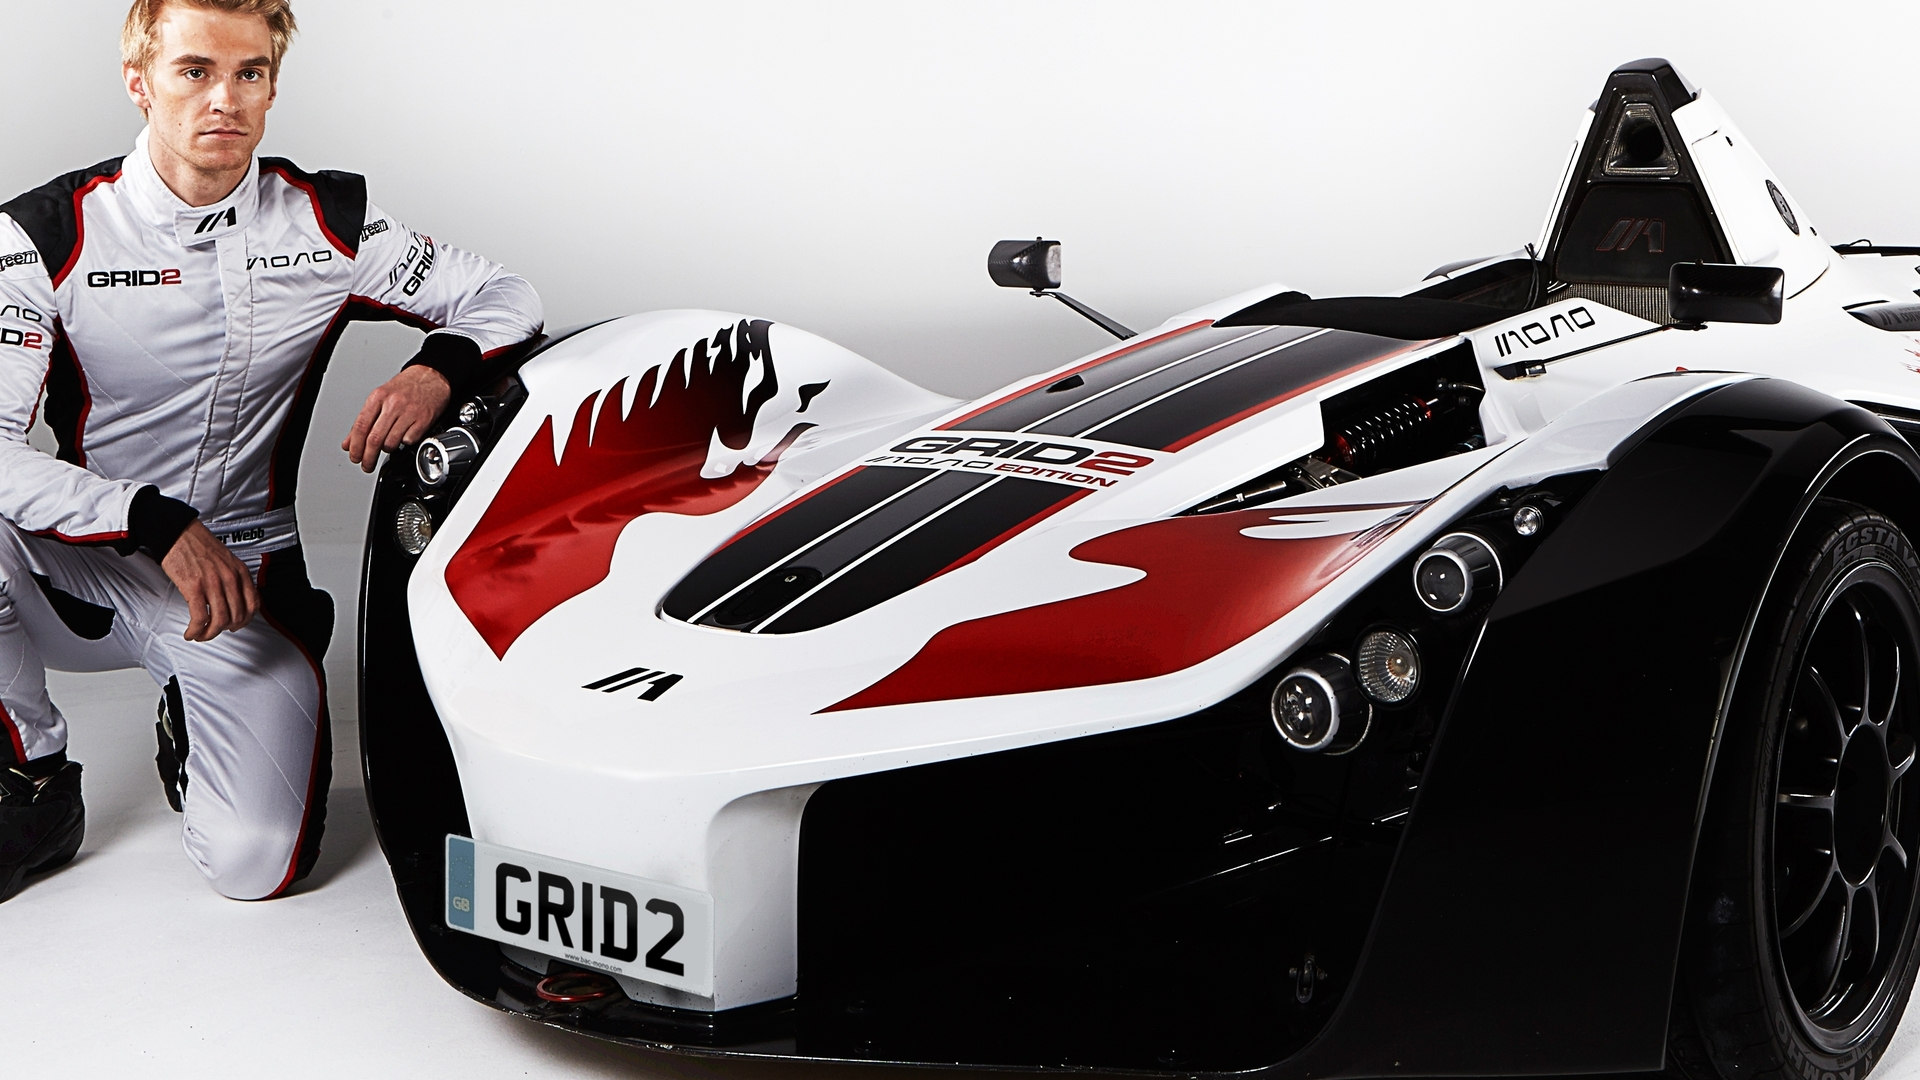 Grid 2 Special Edition costs £125,000